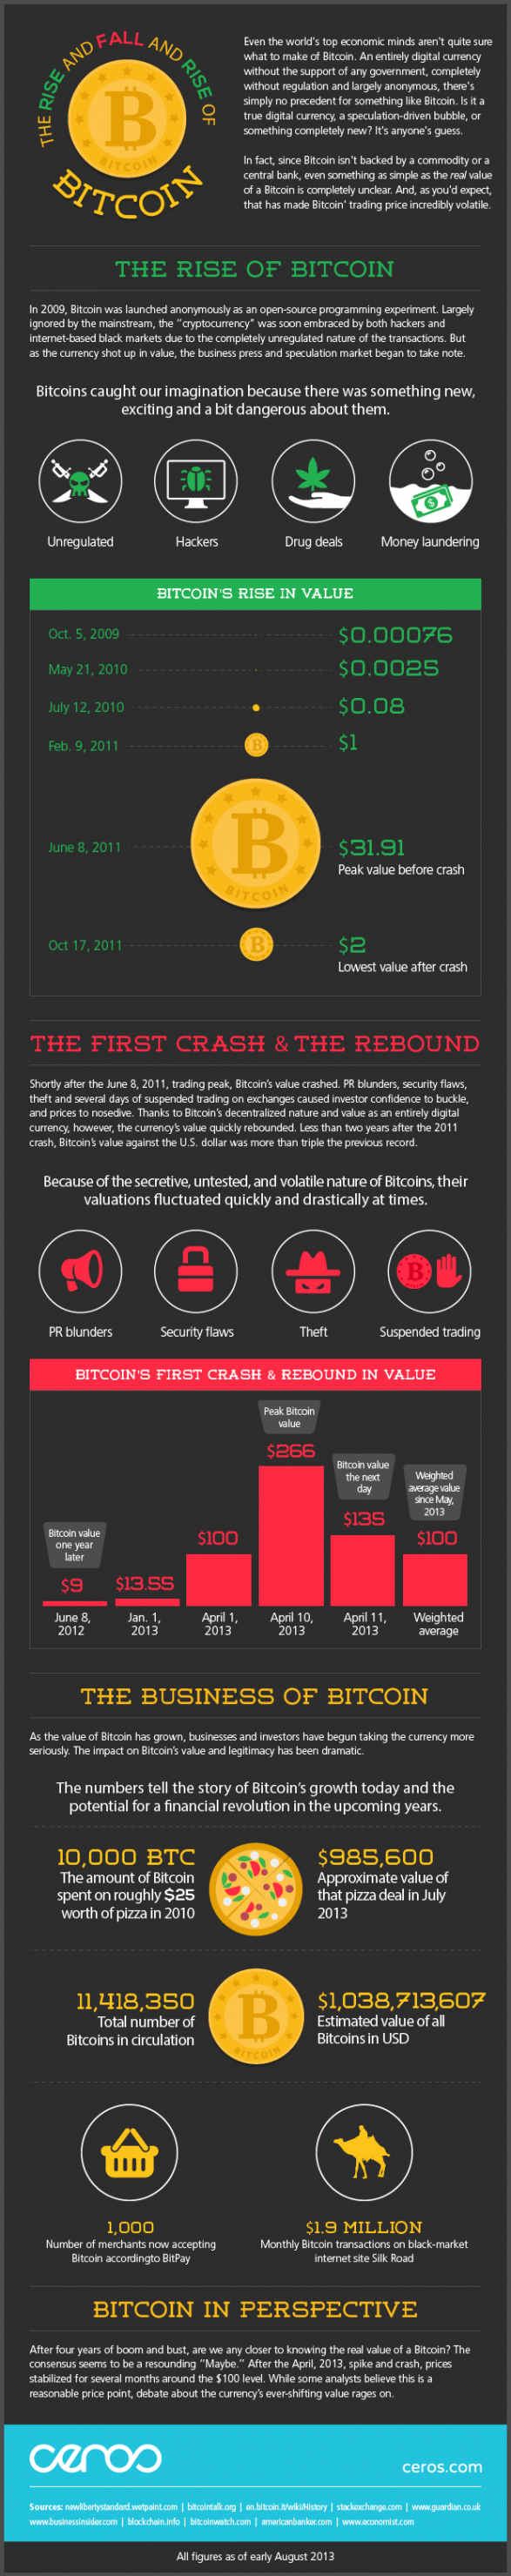 The Rise and Fall and Rise of Bitcoin